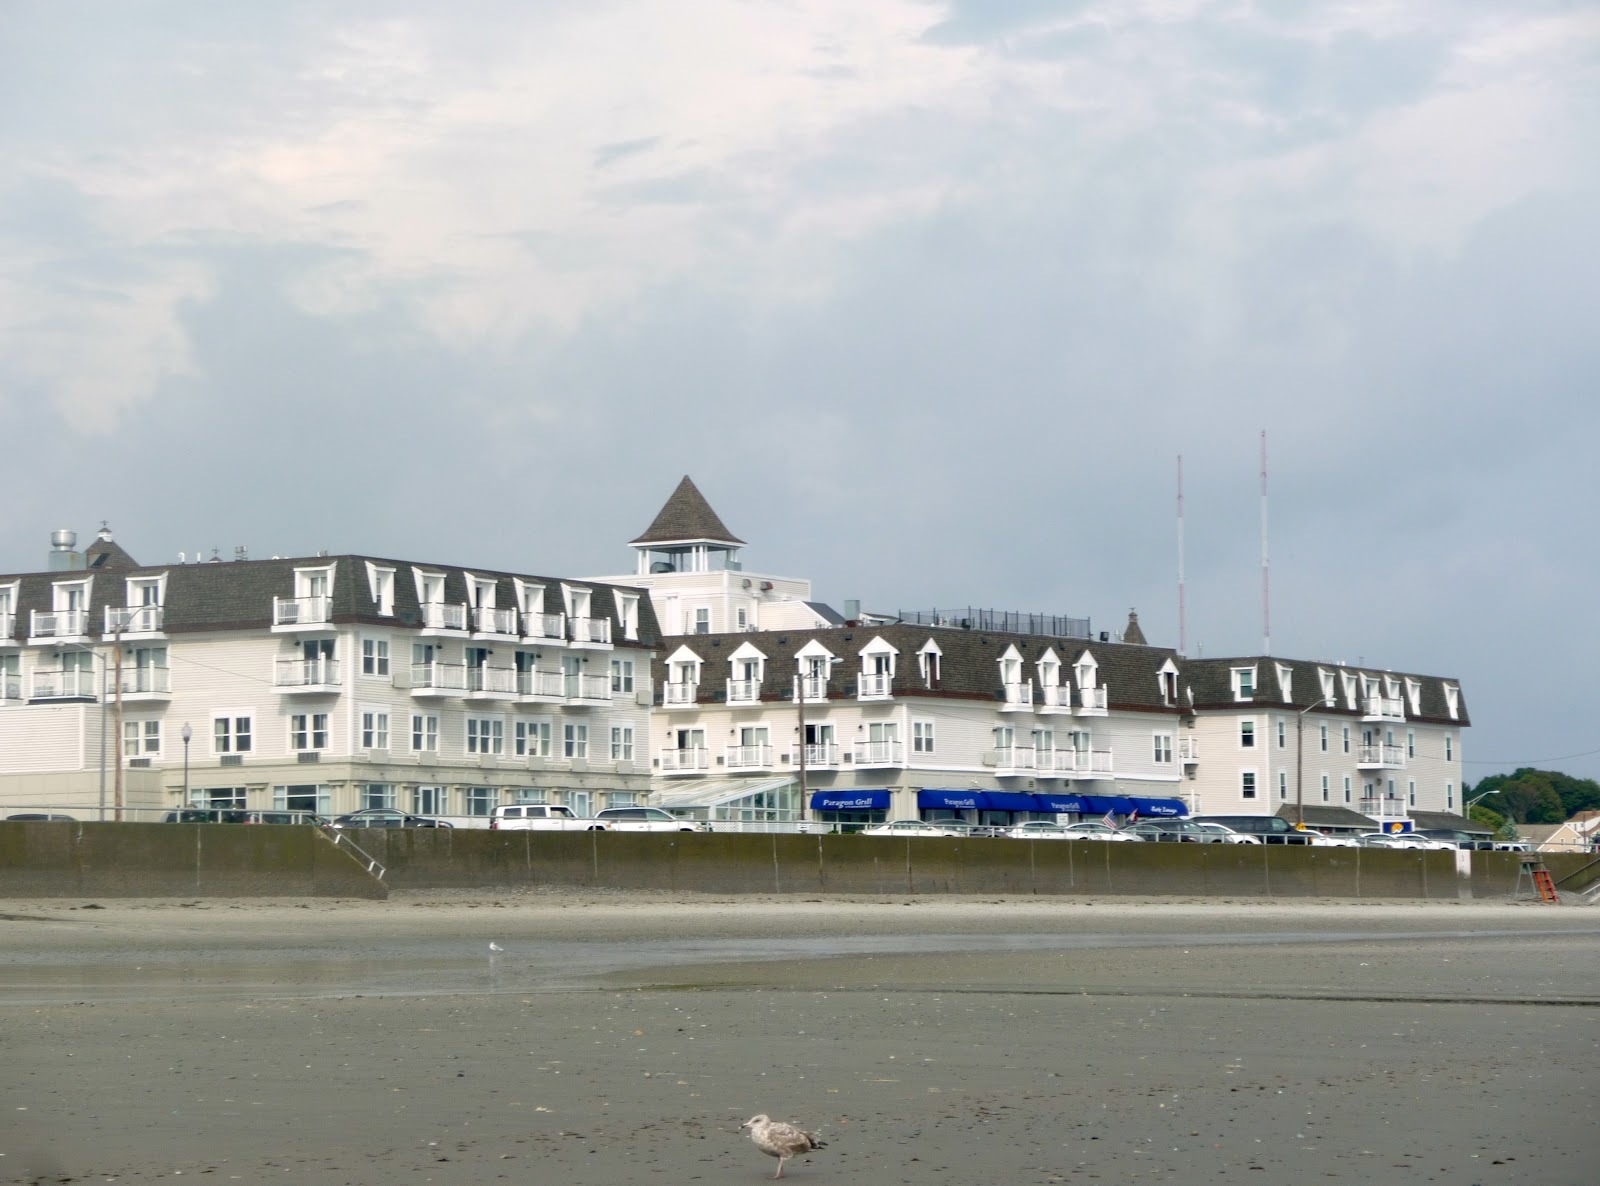 Nantasket Beach Resort in Hull, MA